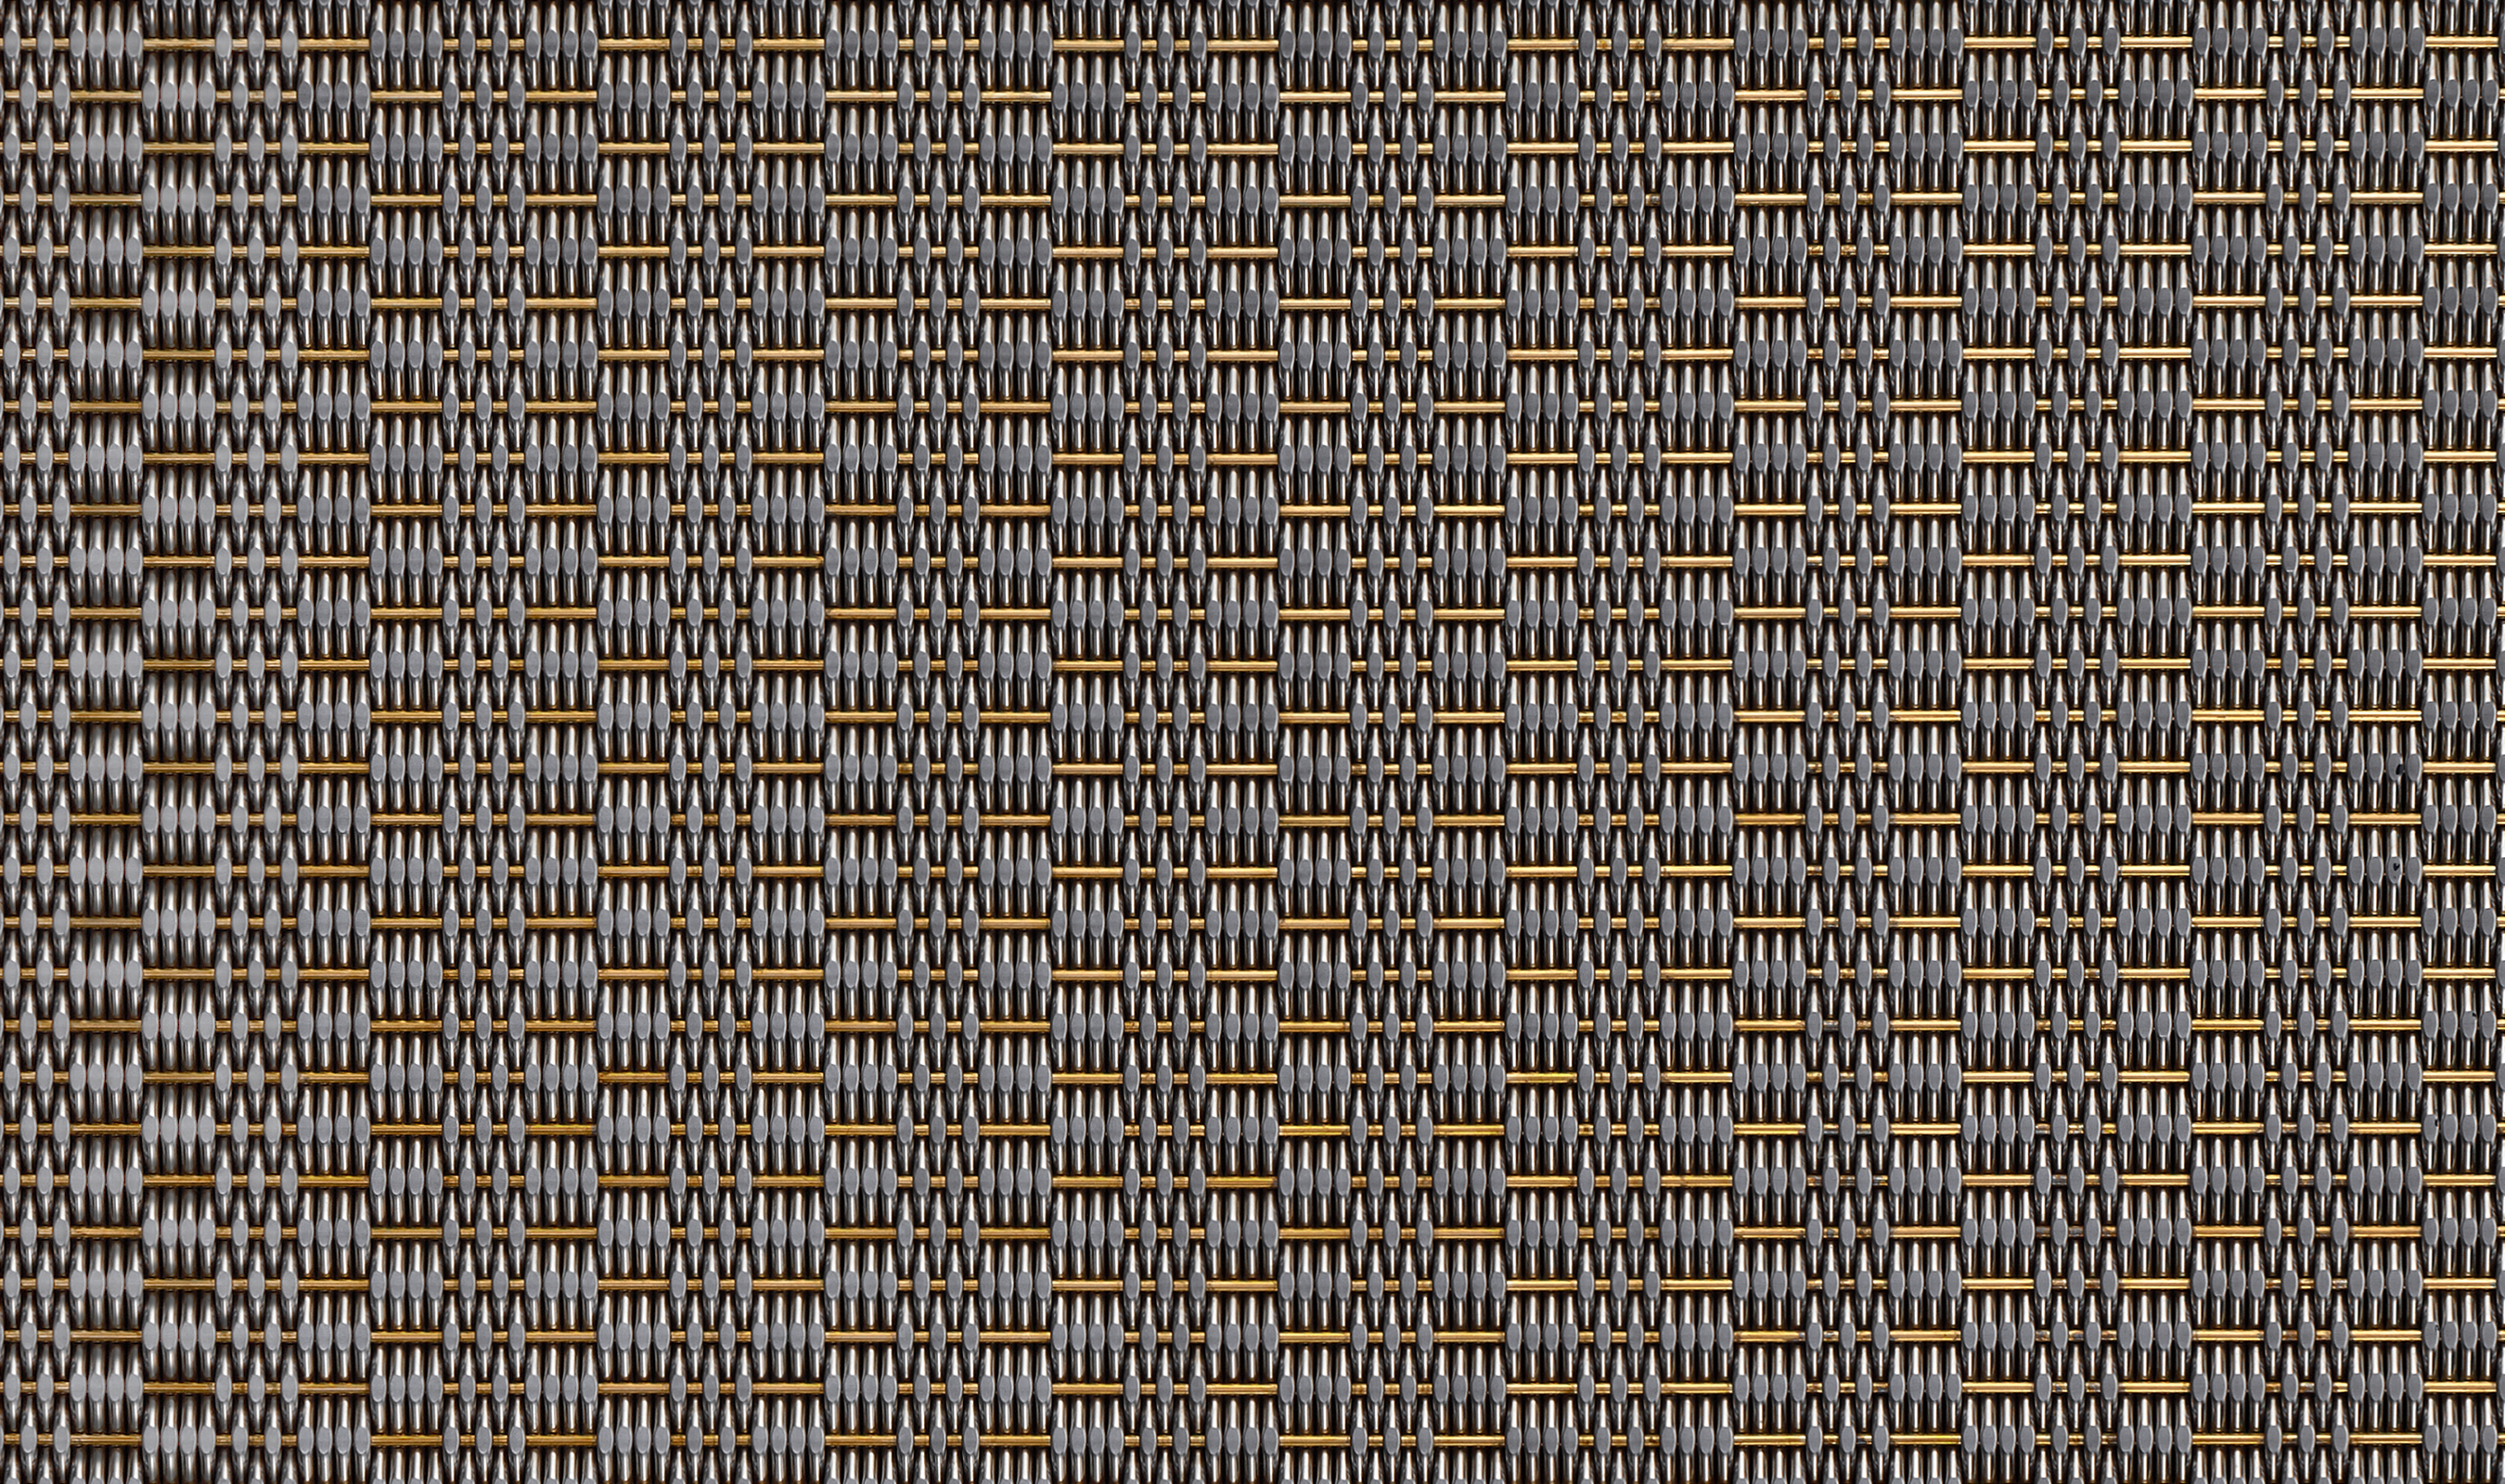 DS-81 Decorative cladding mesh woven in brass and stainless steel